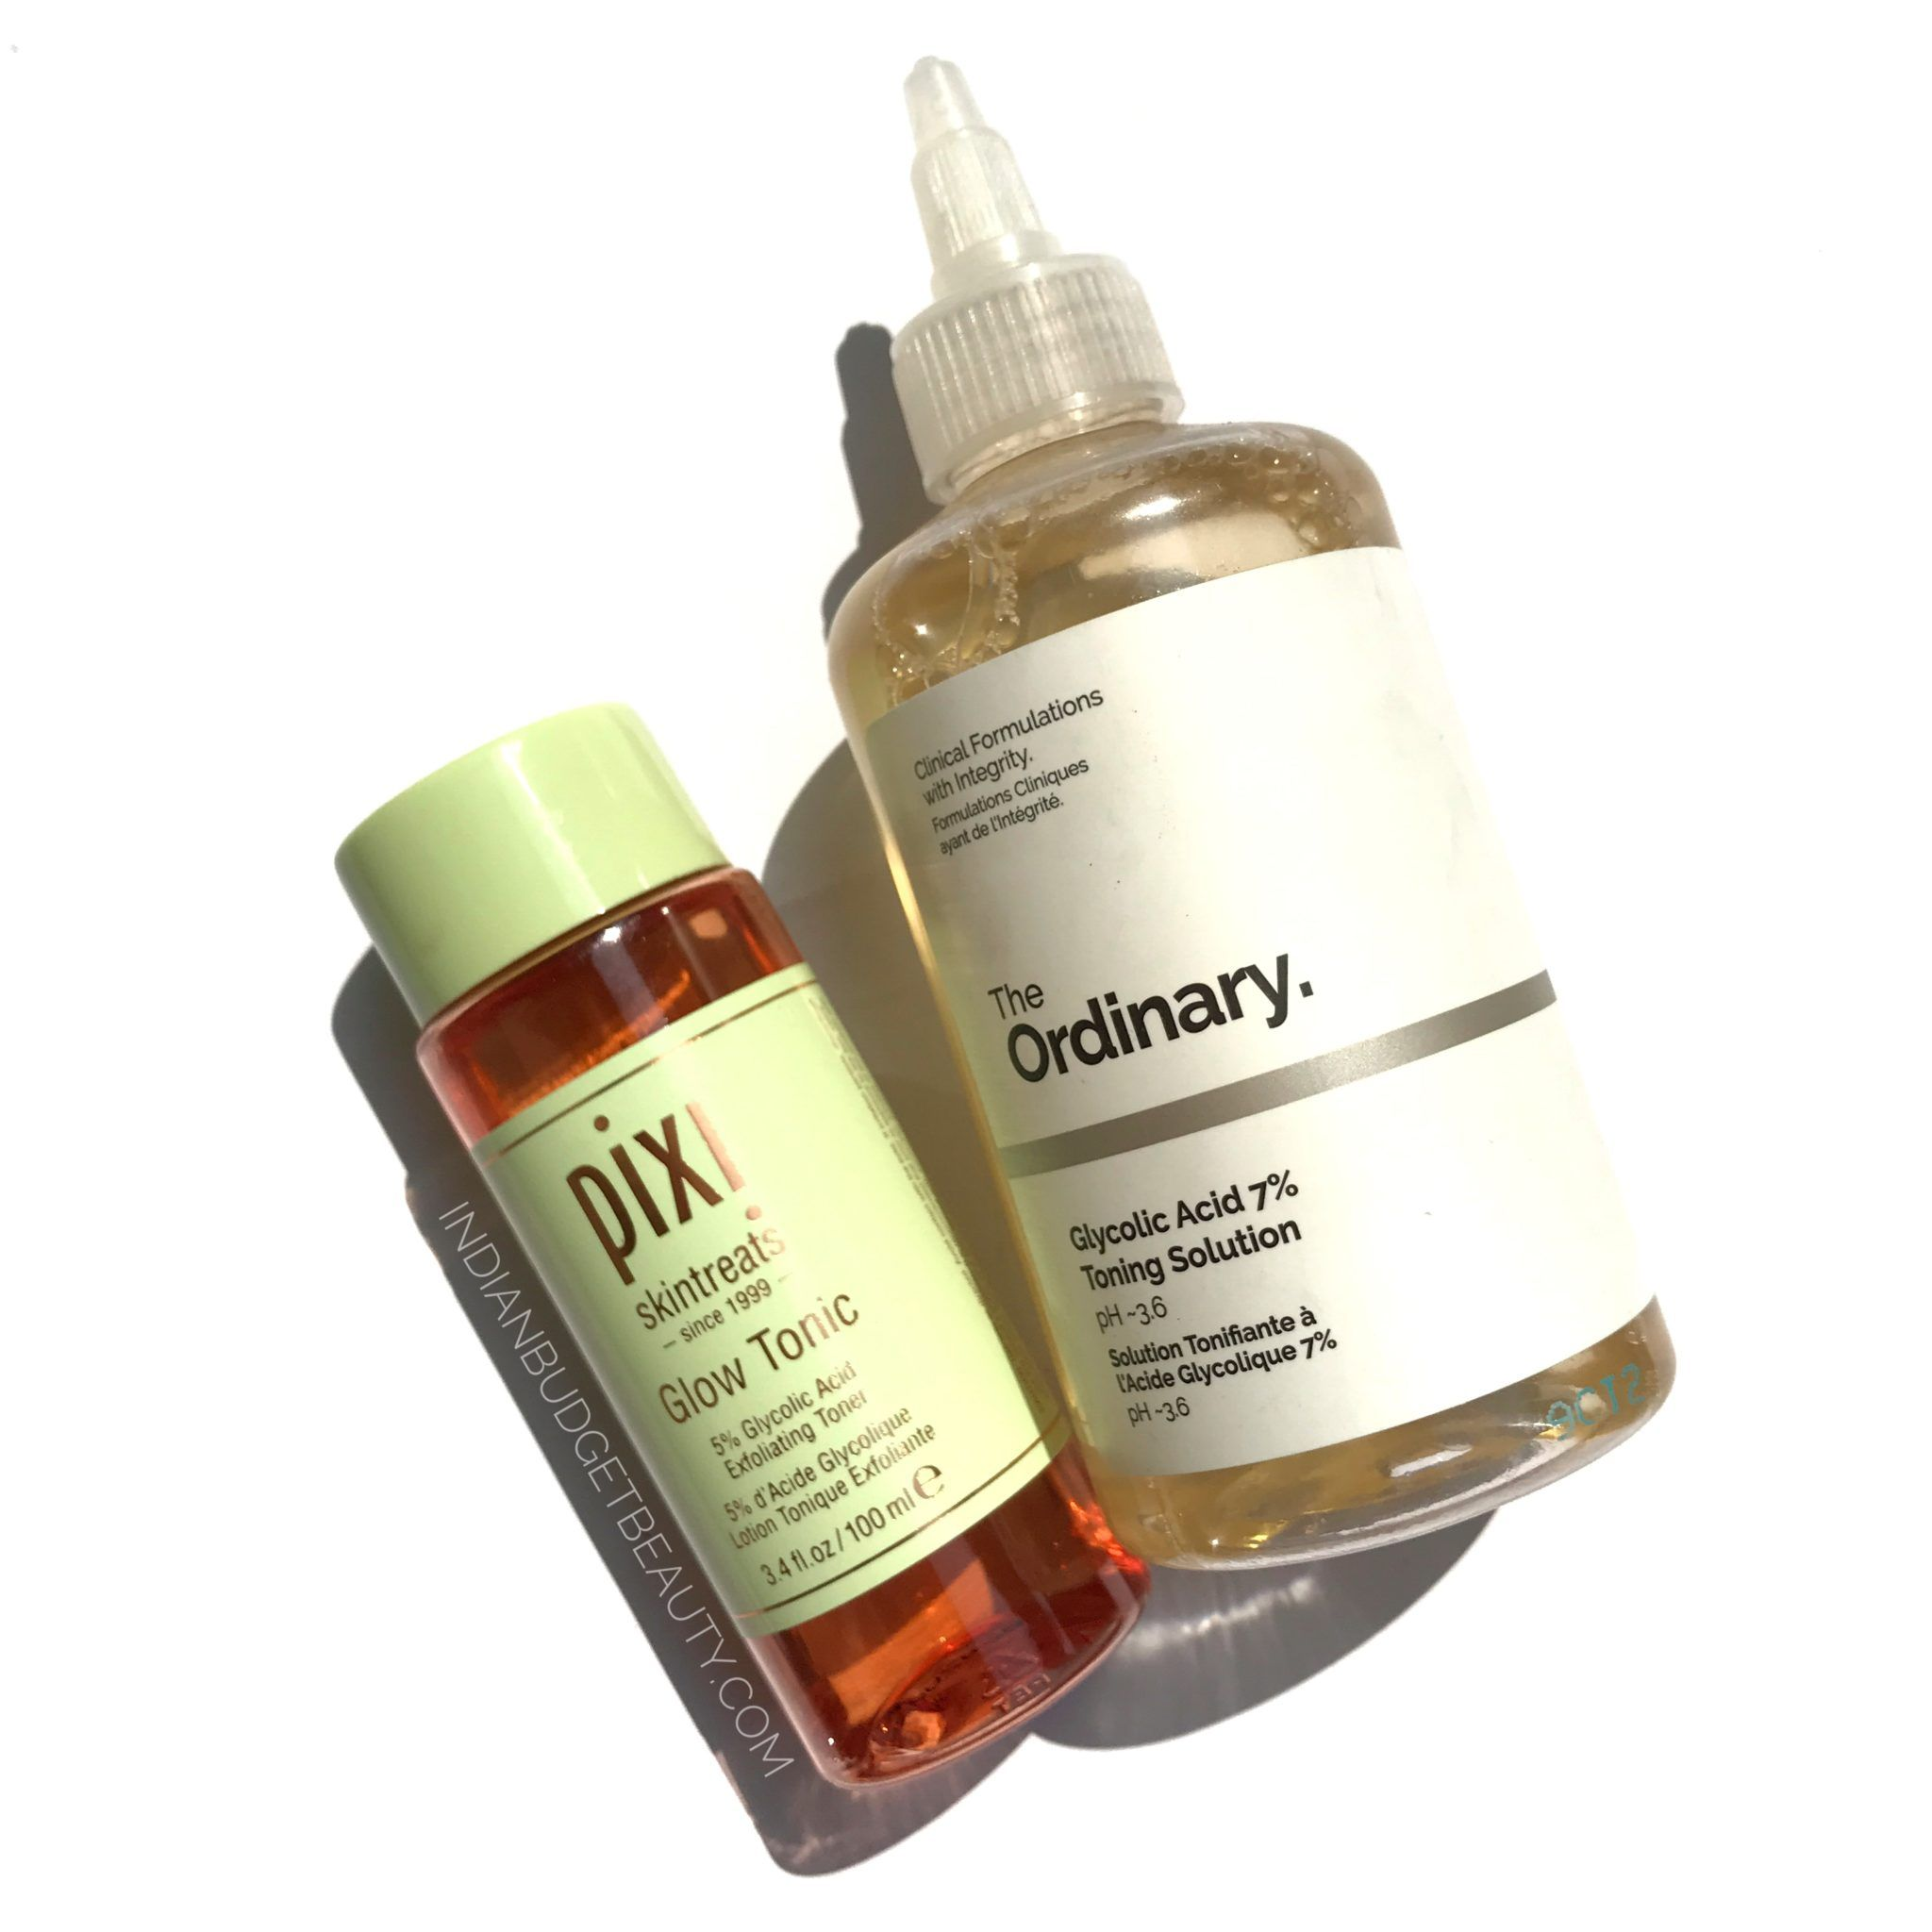 Pixi Glow Tonic vs the ordinary glycolic acid